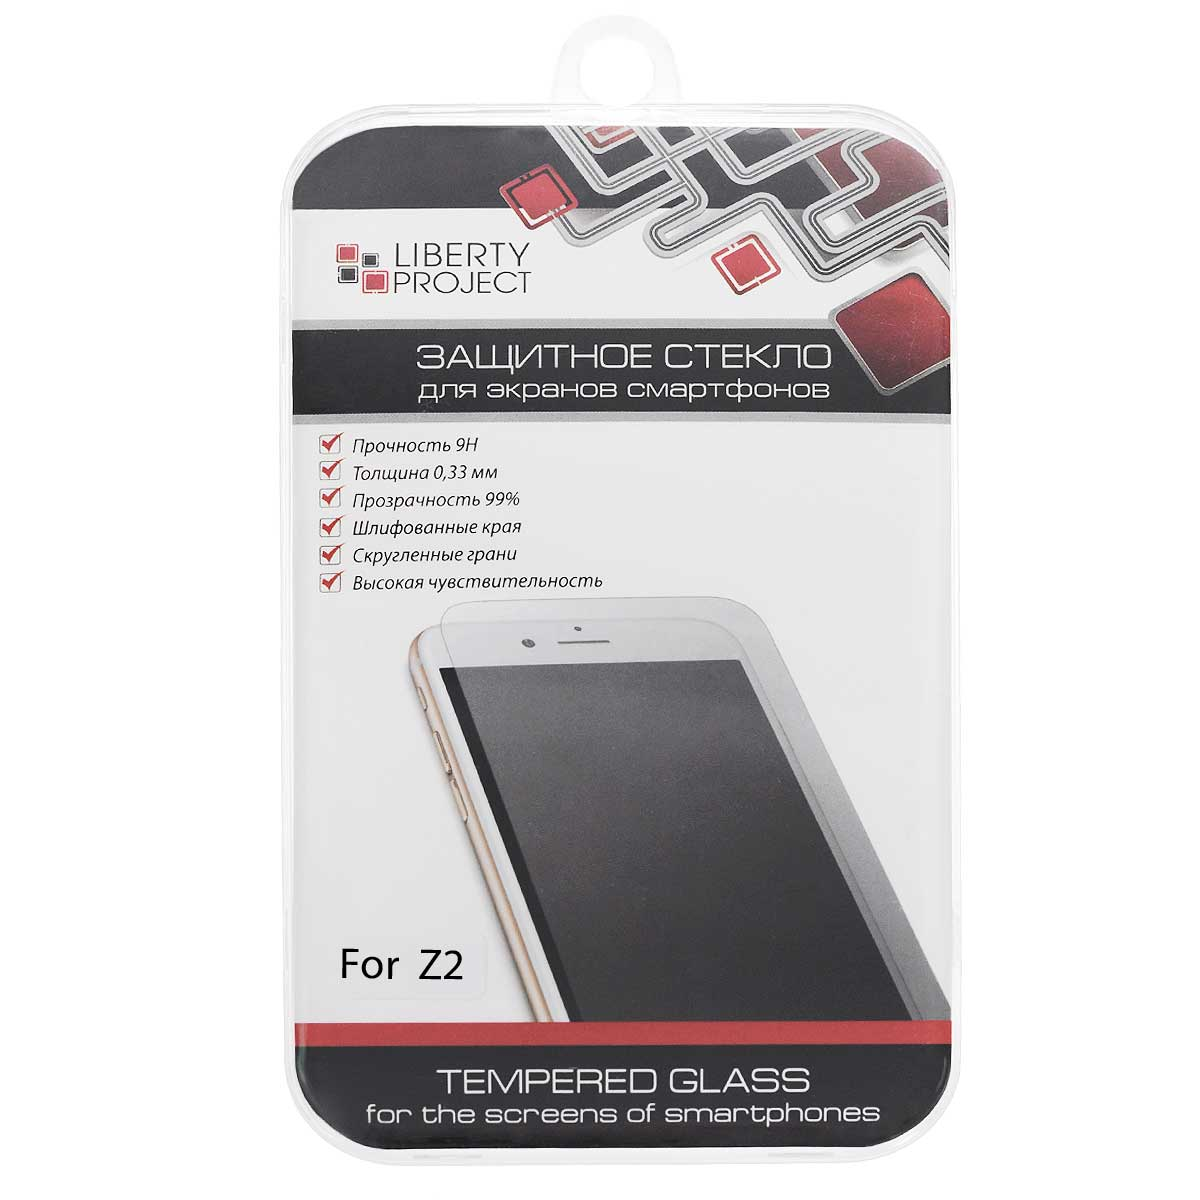 Liberty Project Tempered Glass защитное стекло для Sony Z2, Clear (0,33 мм) liberty project tempered glass защитное стекло для iphone 6 plus clear 0 33 мм